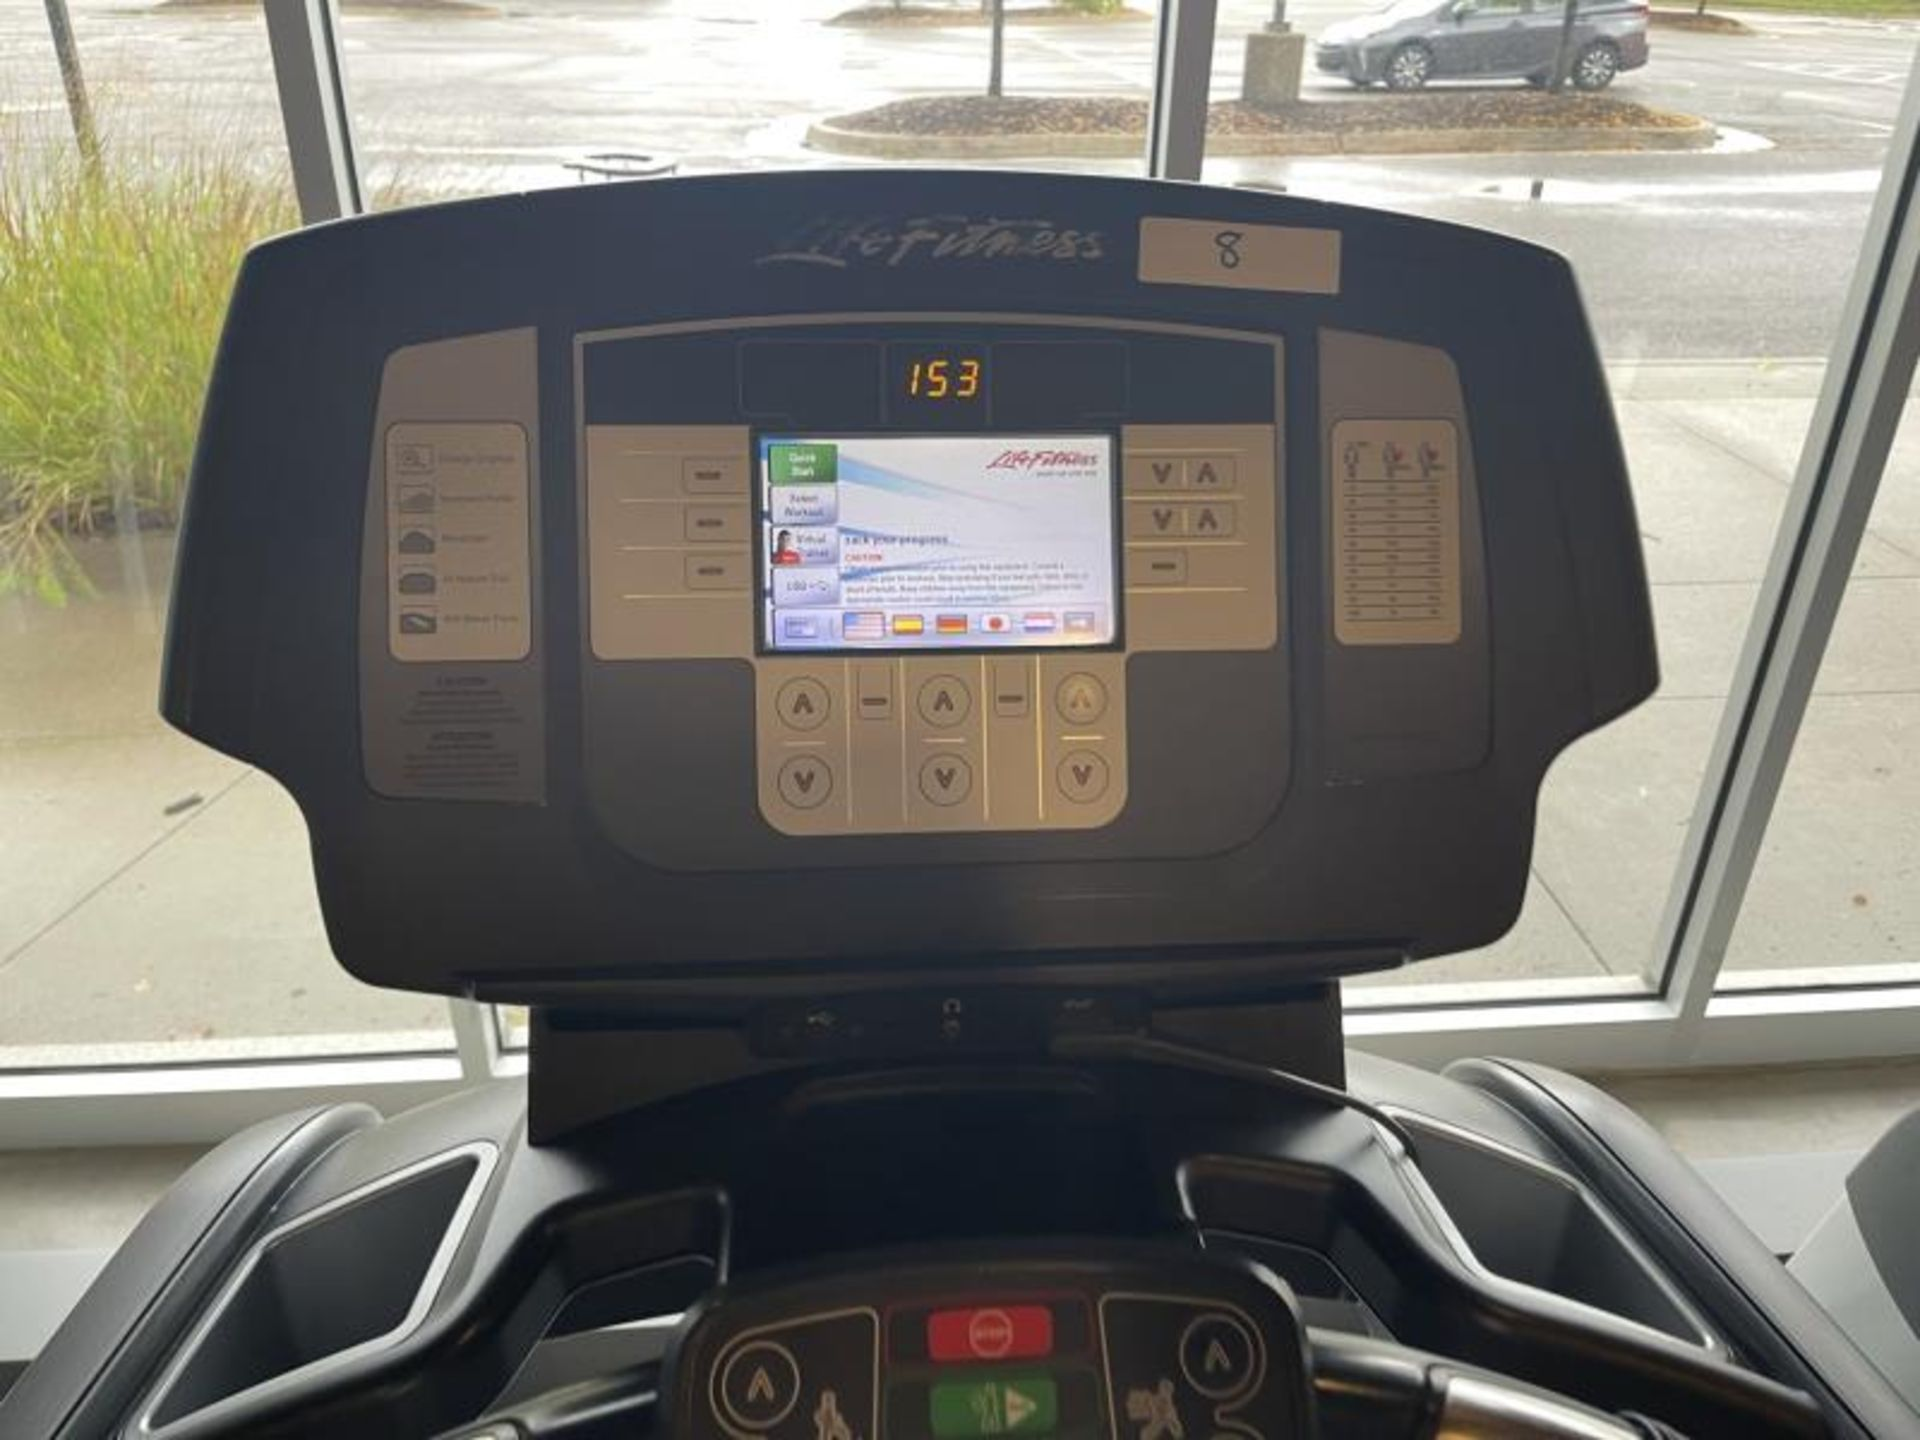 Life Fitness Treadmill M: 95T with Flex Deck, Shock Absorption System SN: TET107109 - Image 2 of 2